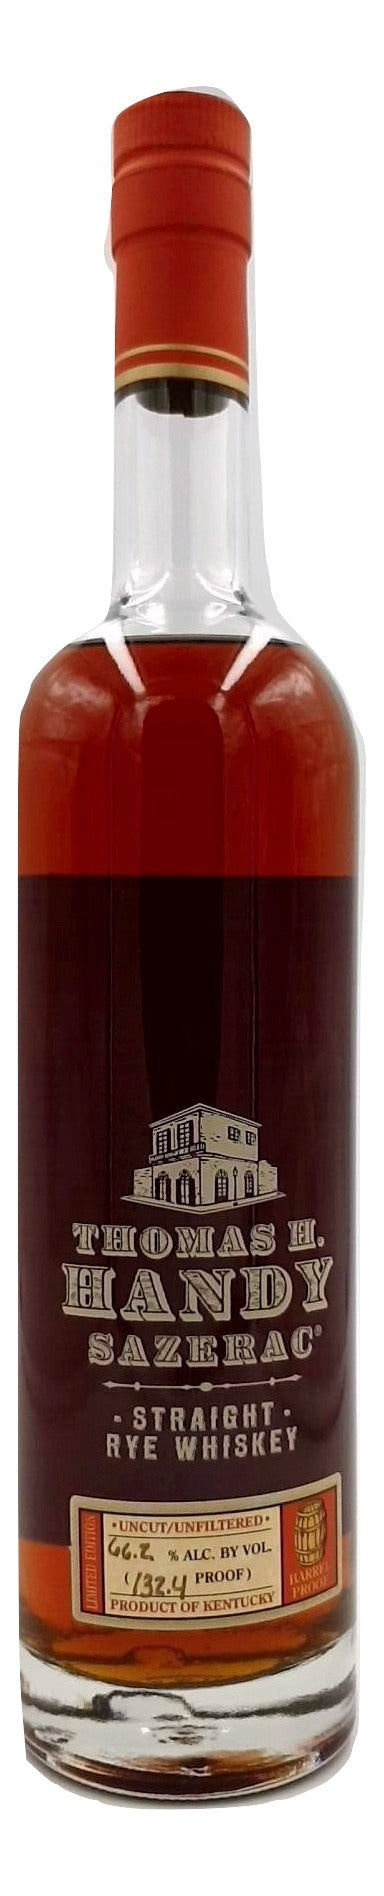 Thomas H. Handy Sazerac 2012 Straight Rye For Sale - NativeSpiritsOnline